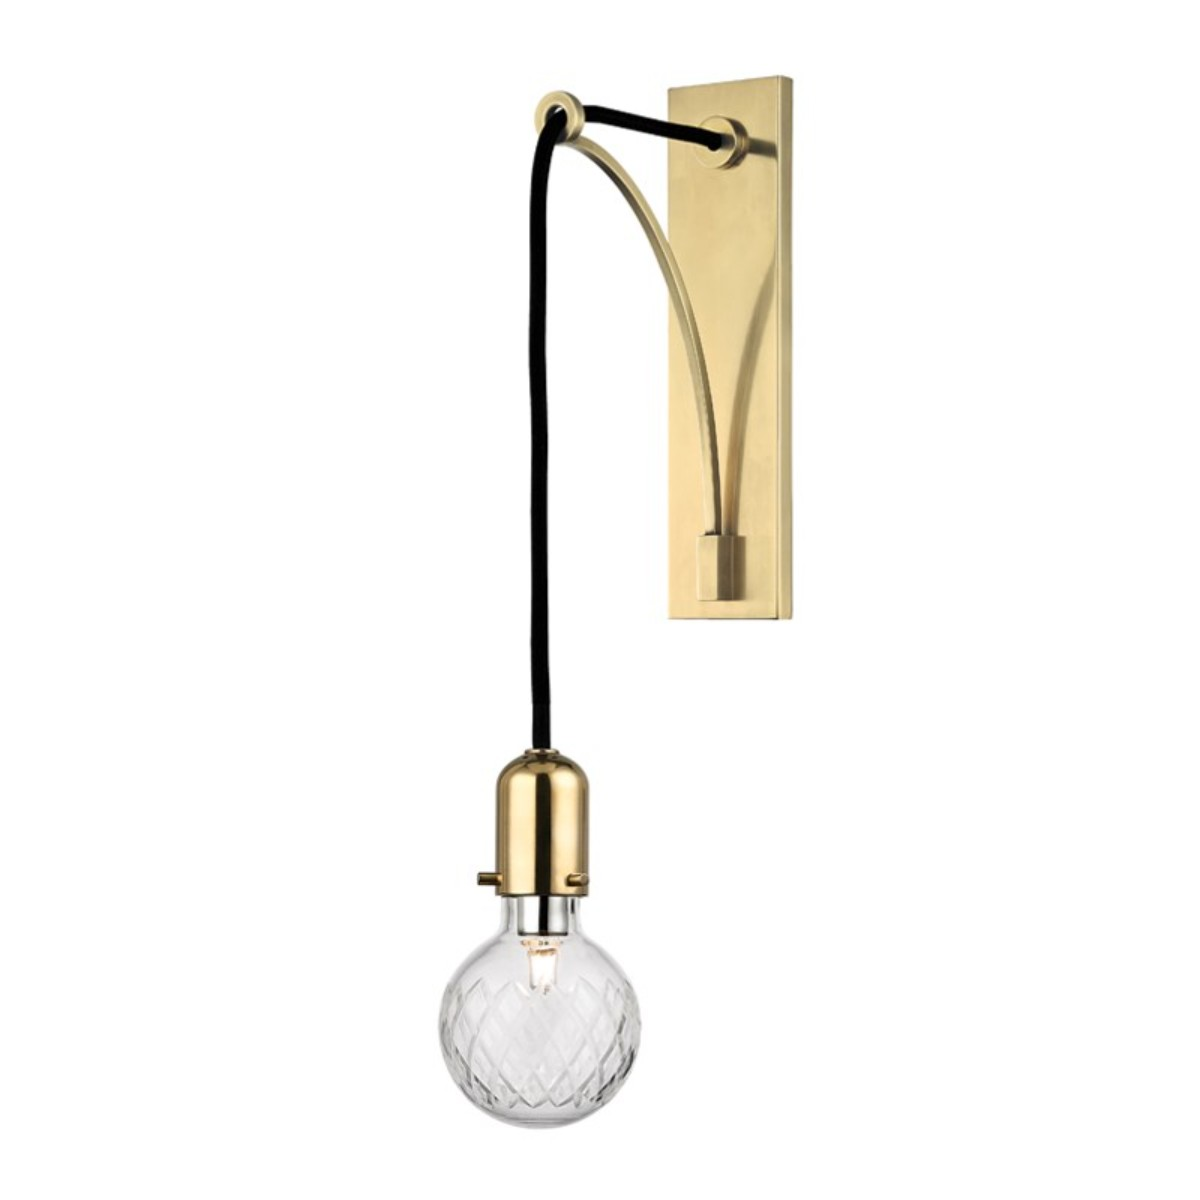 Hudson Valley I Marlow Wall Sconce I Aged Brass